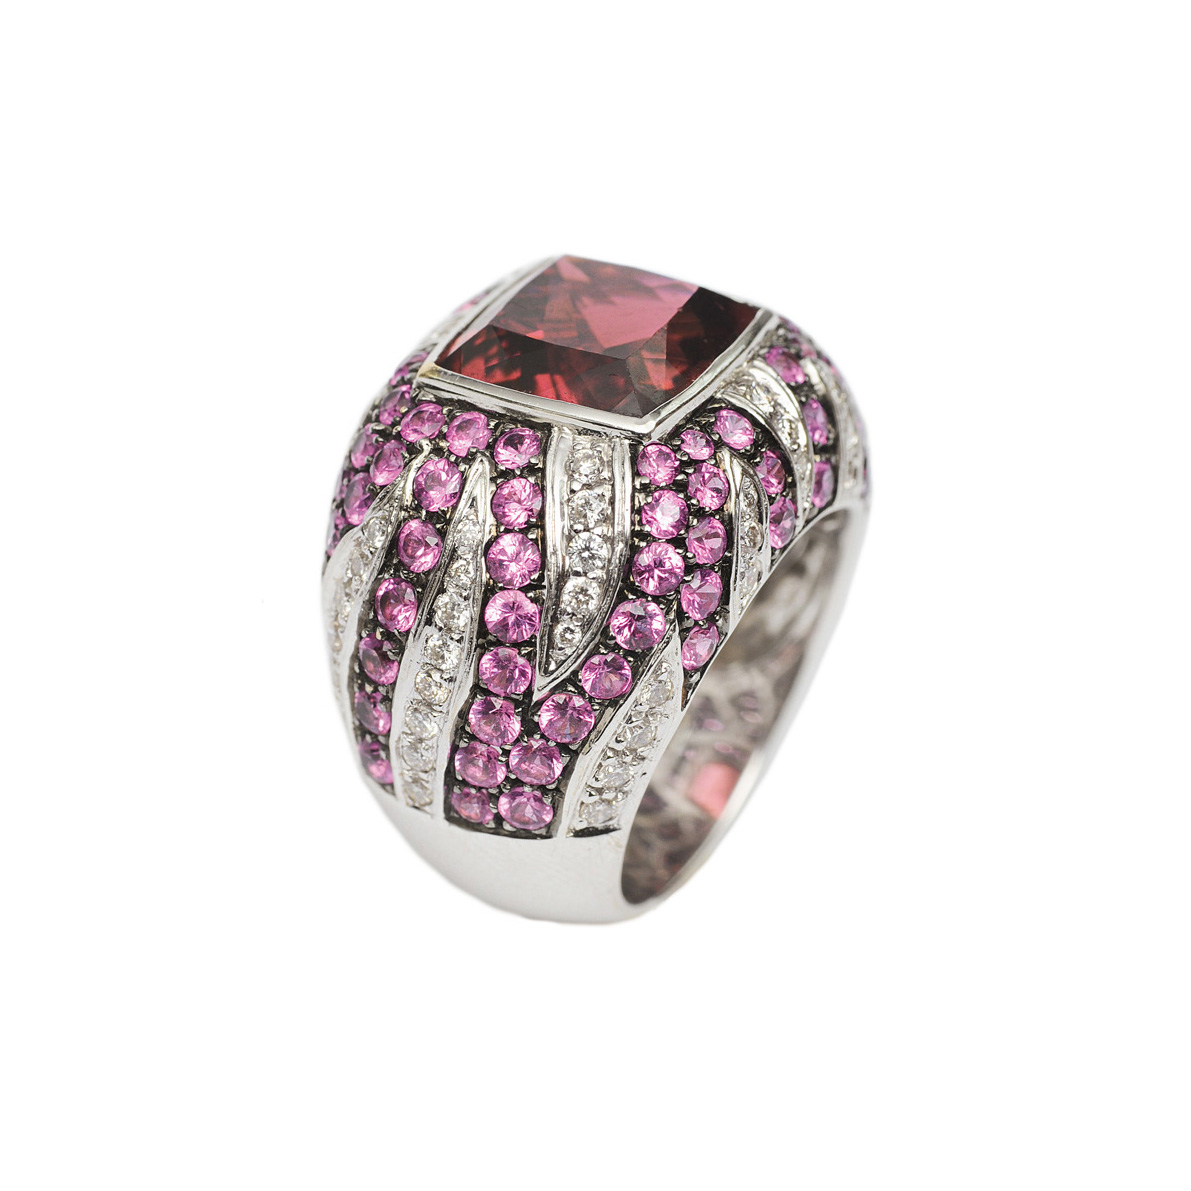 A colourful precious ring with pink-tourmaline, pink-sapphires and diamonds